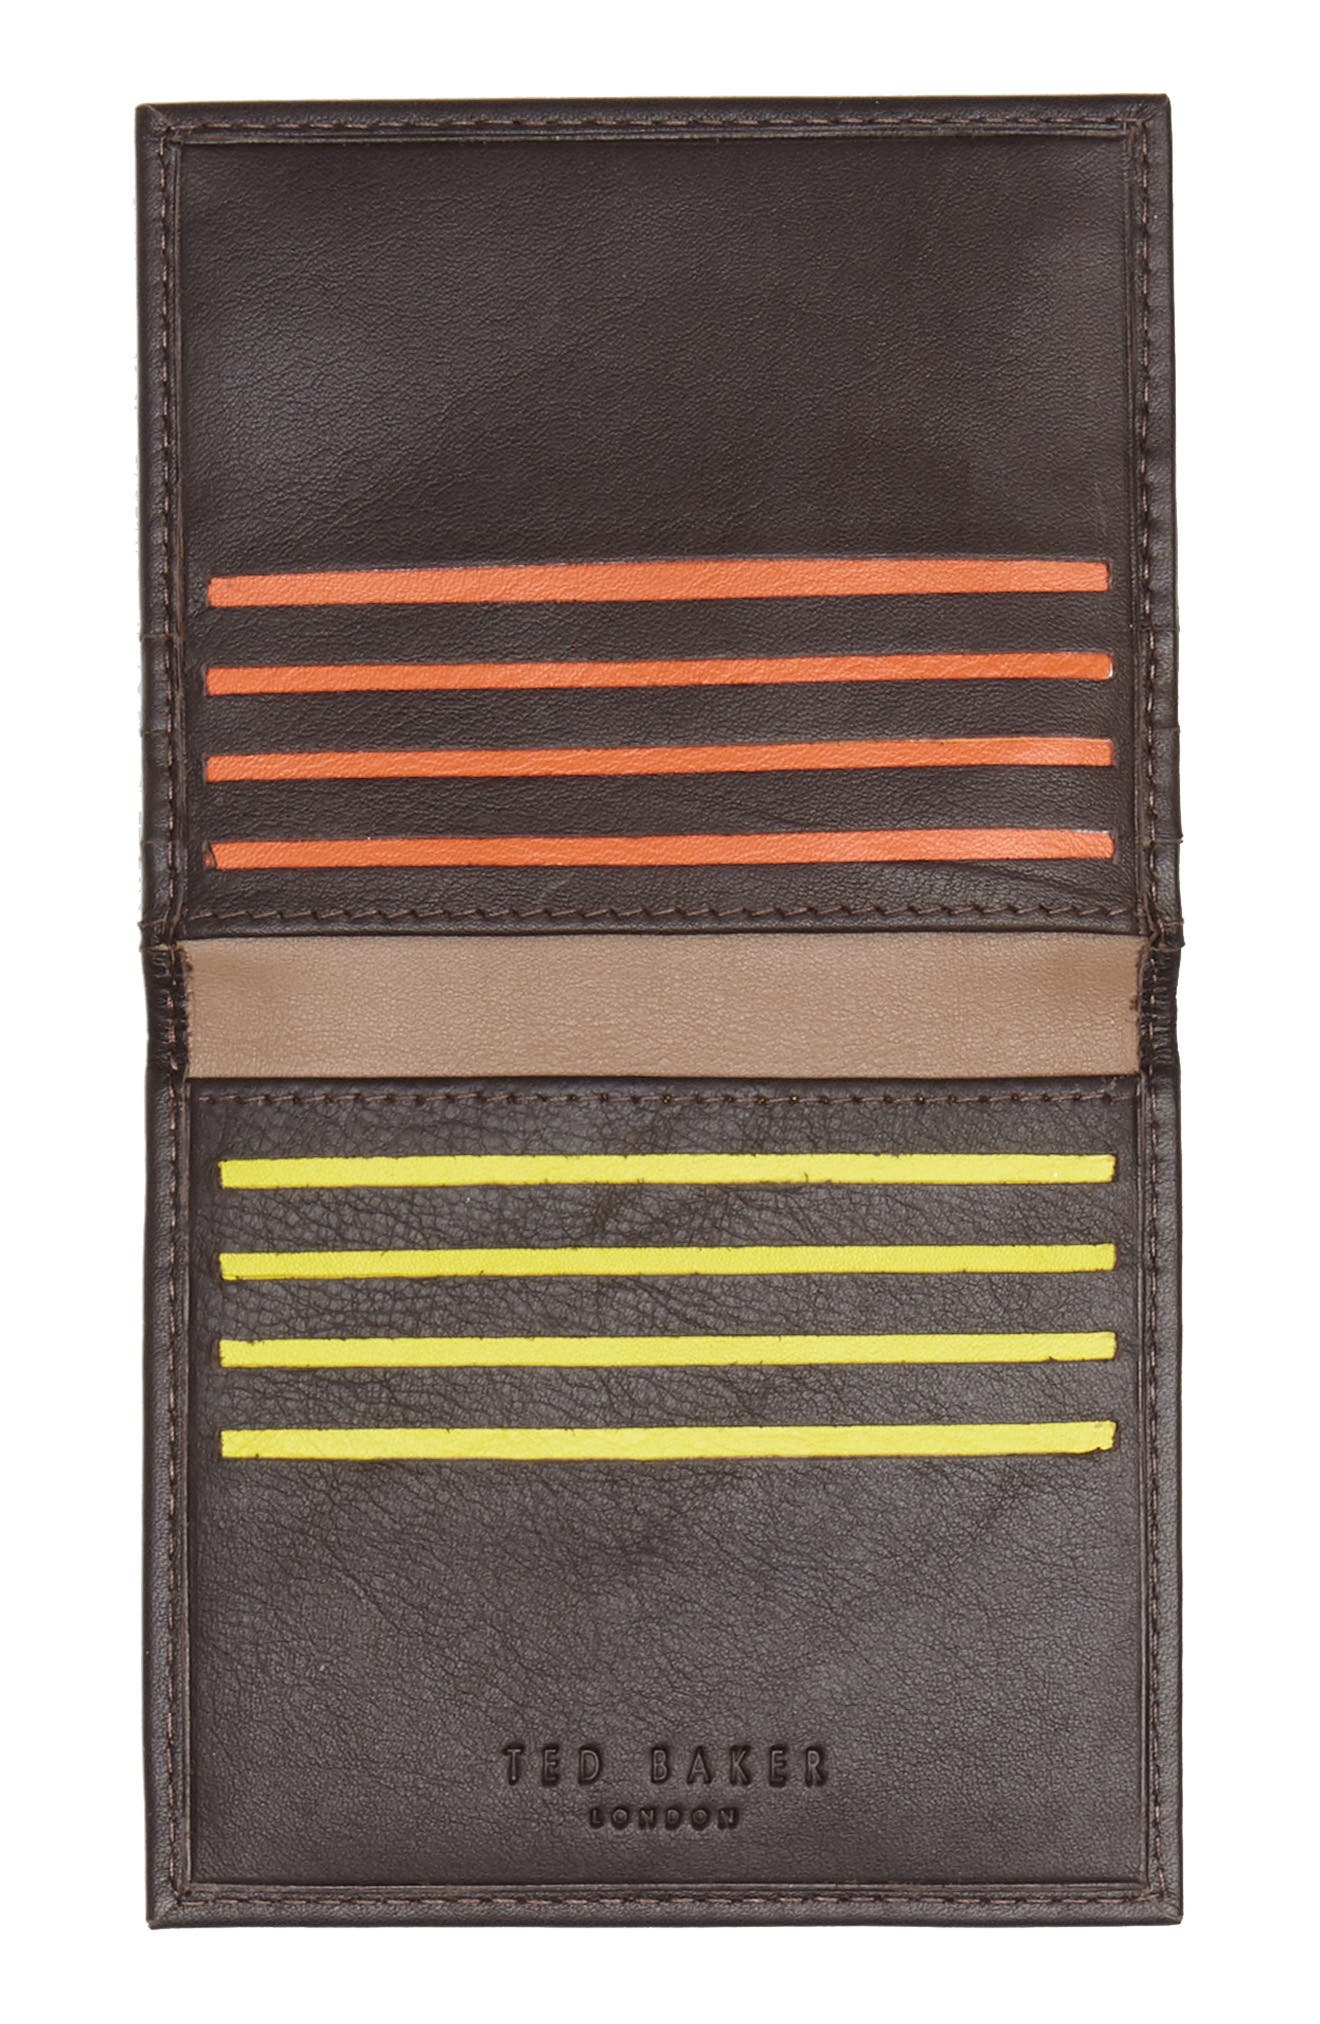 Foxes Stripe Leather Foldover Card Case,                             Alternate thumbnail 2, color,                             Chocolate